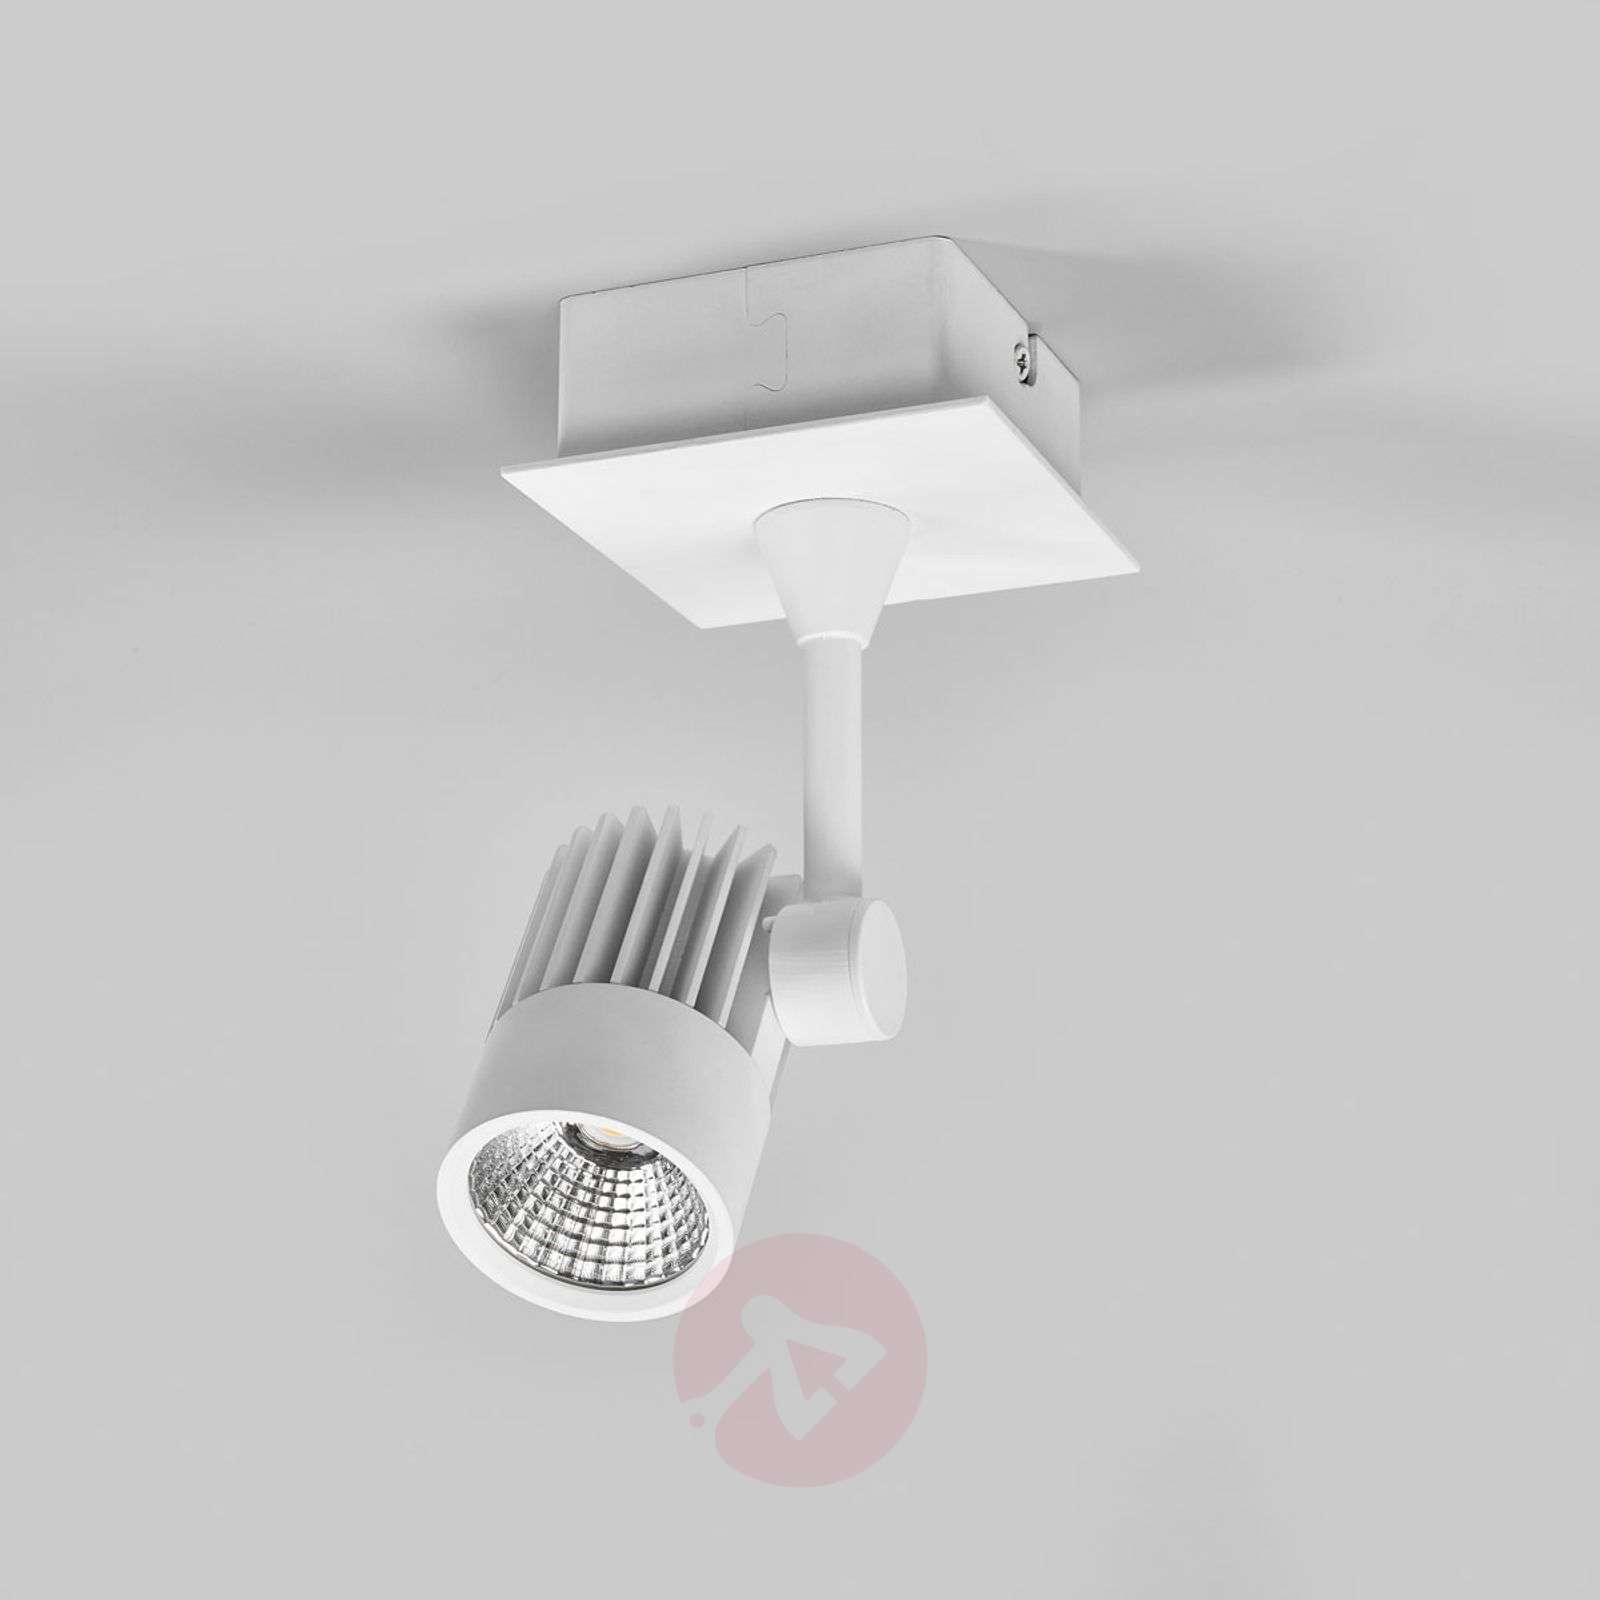 Justus LED recessed/surface light-9967021-02